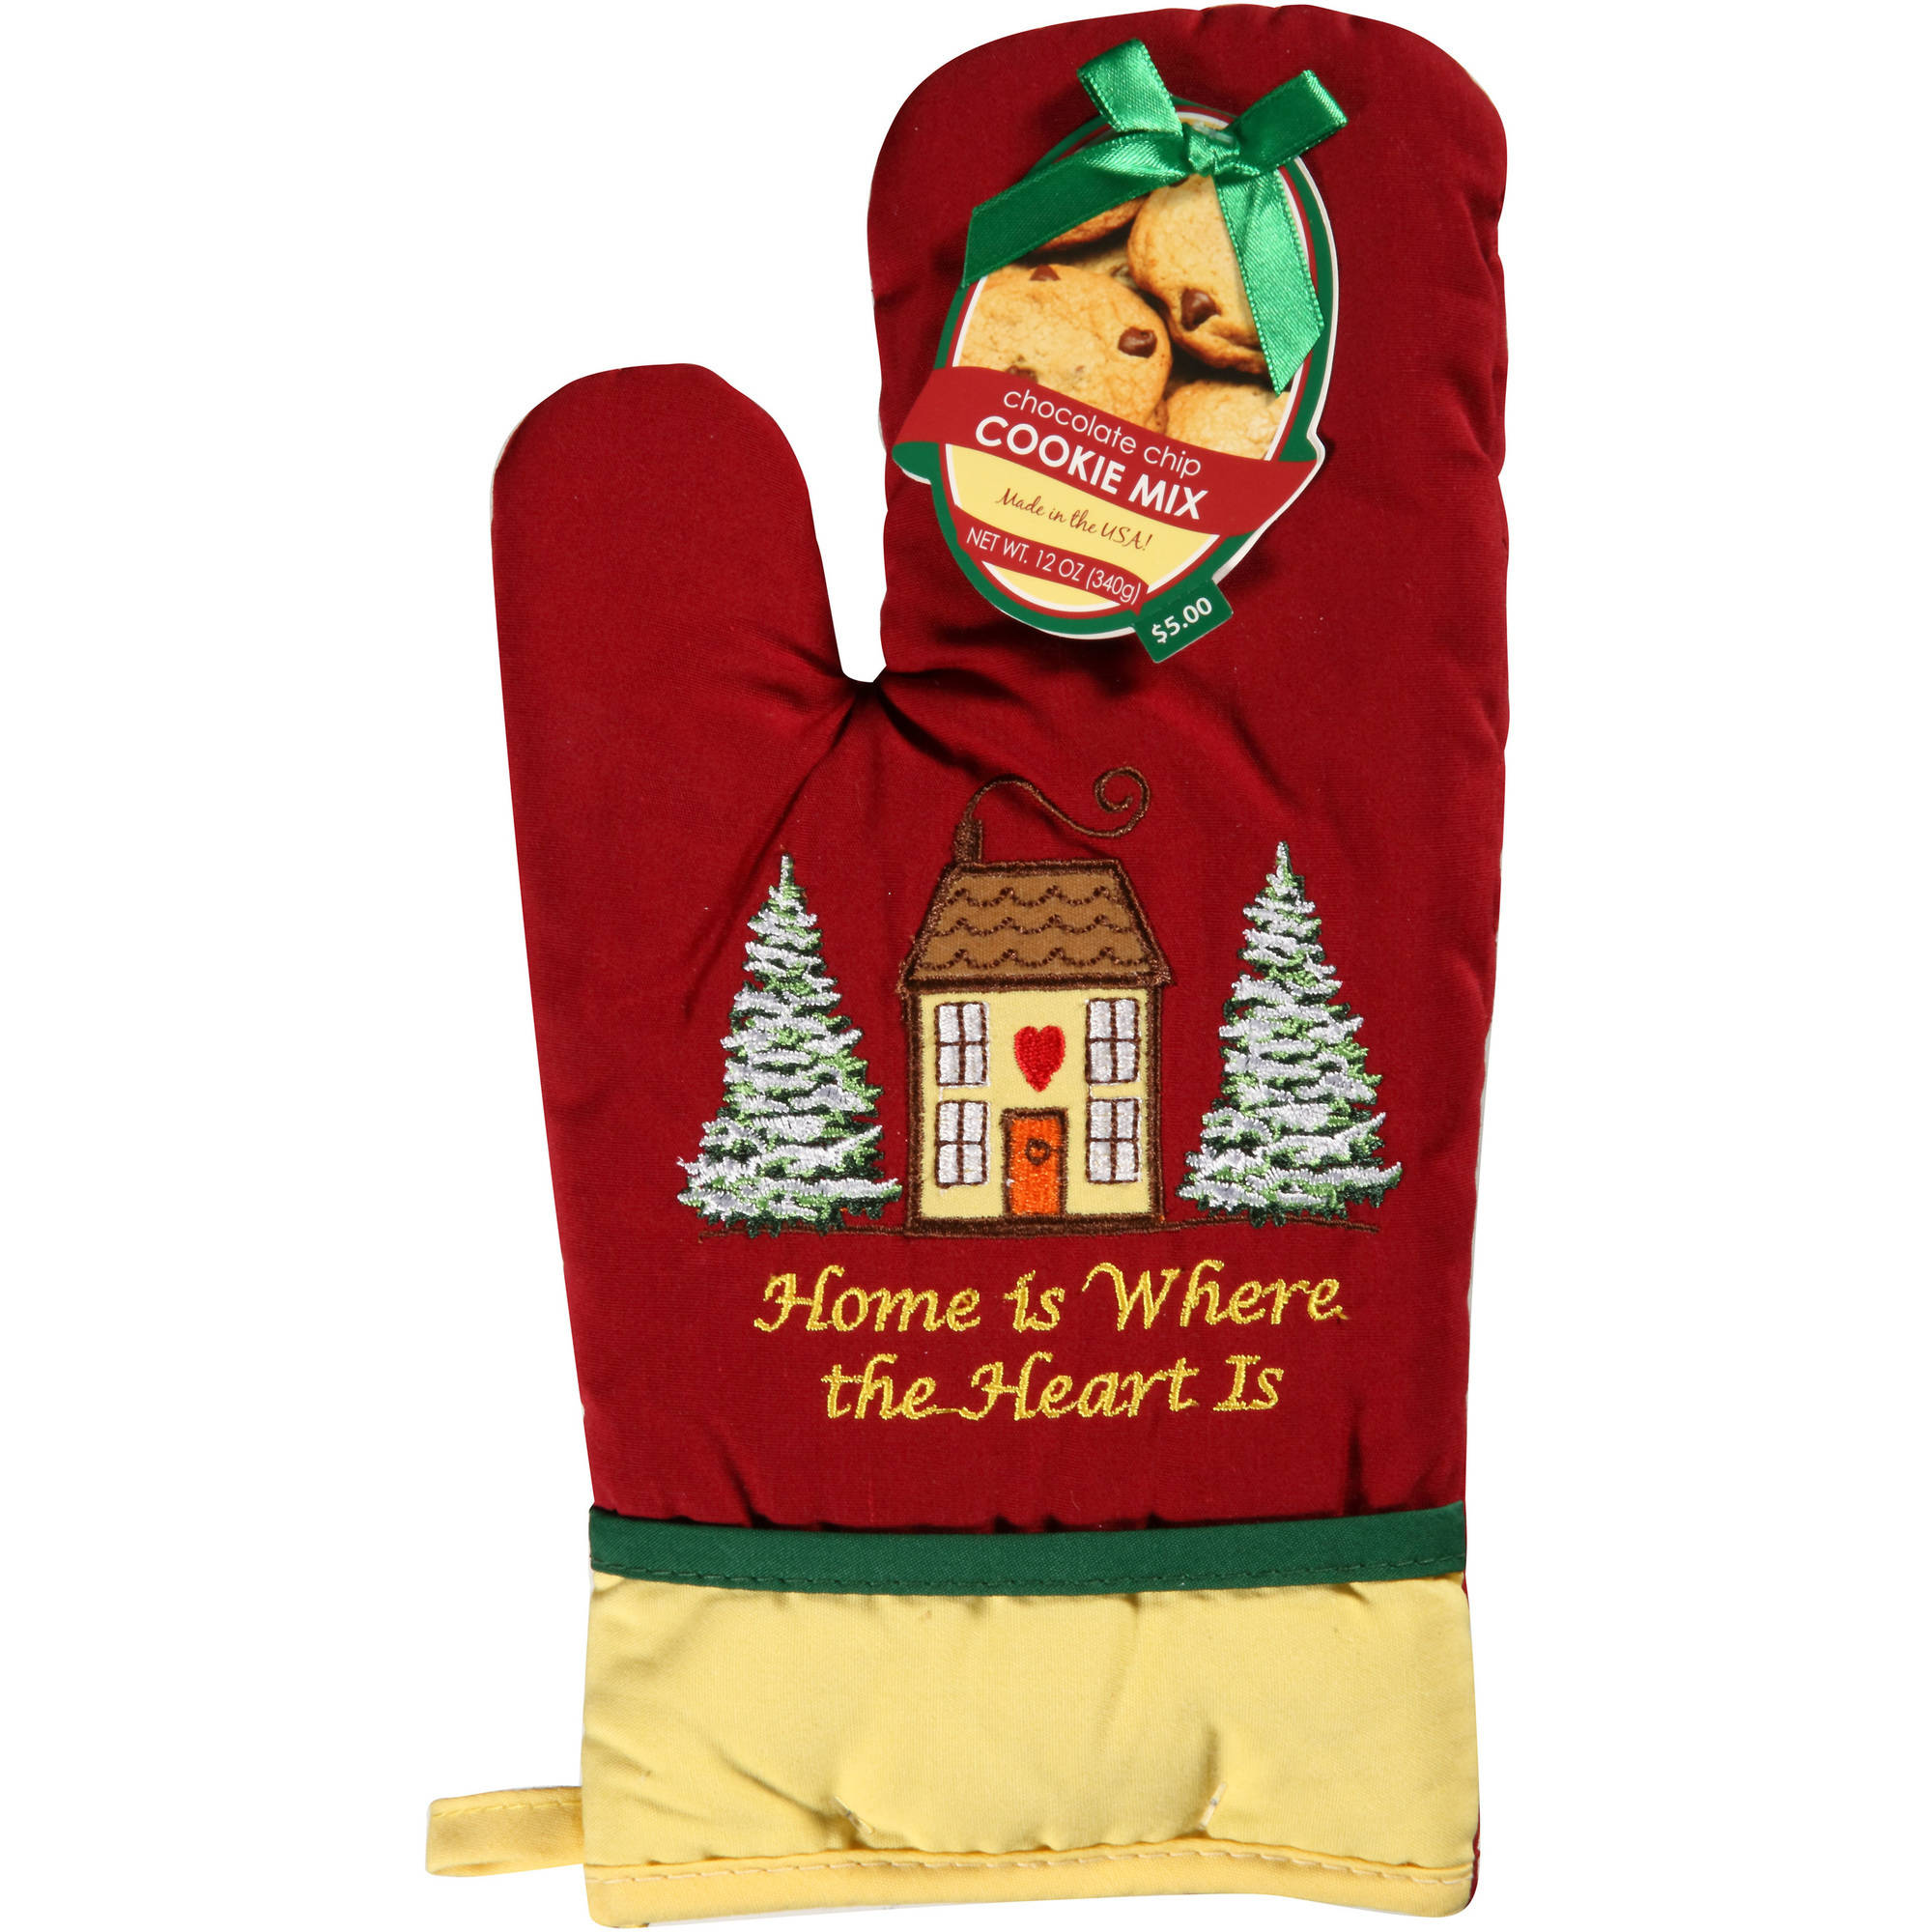 Holiday Shaped Pot Holder with Cookie Mix, 2 Piece Gift